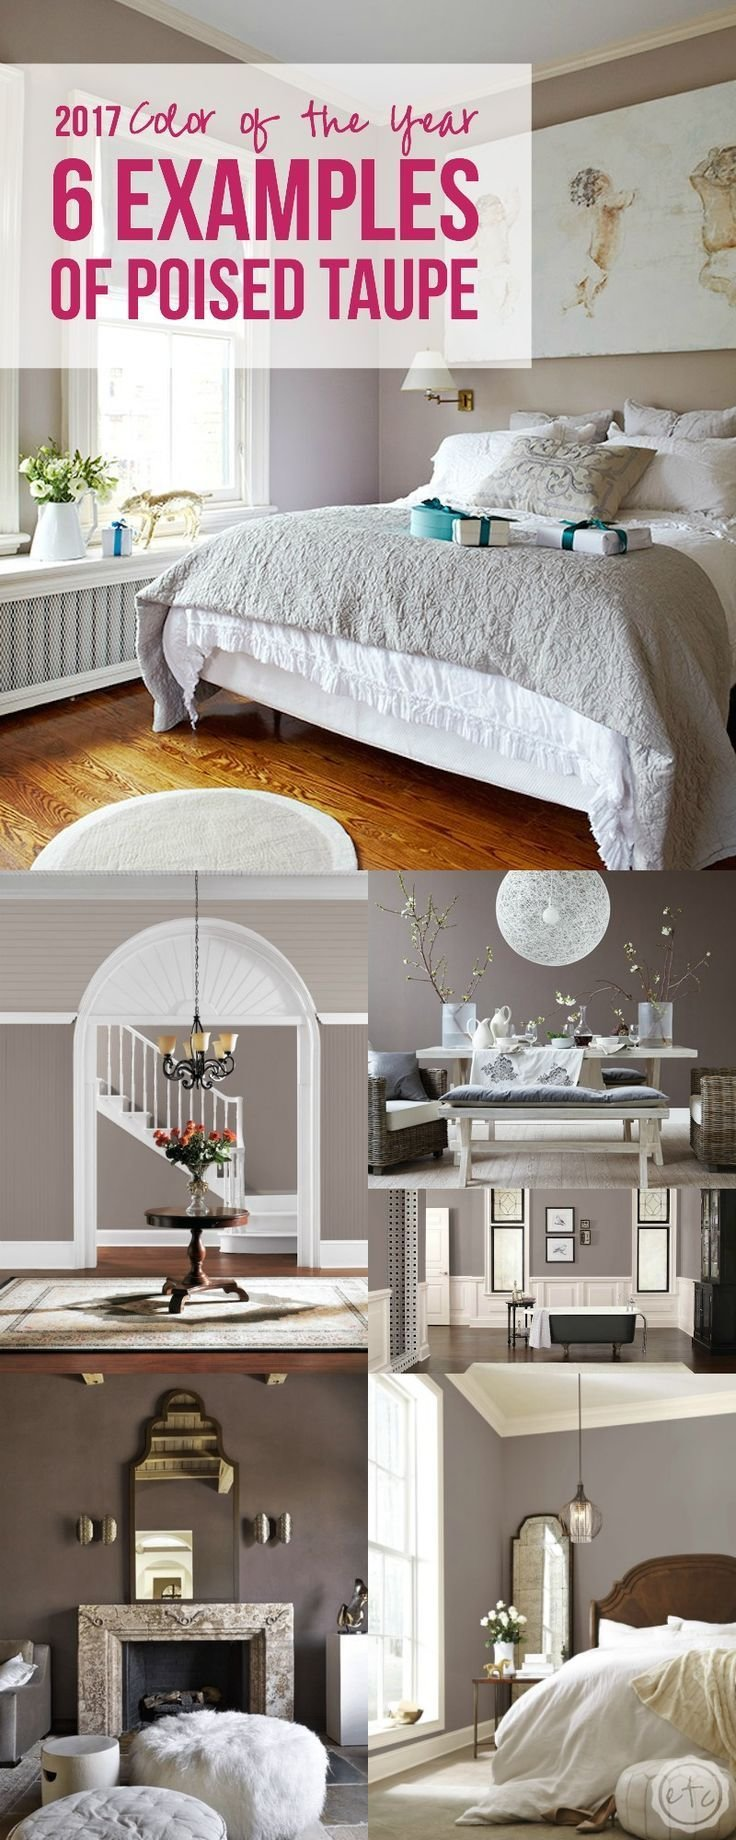 Best 25 Taupe Bedroom Ideas That You Will Like On Pinterest With Pictures